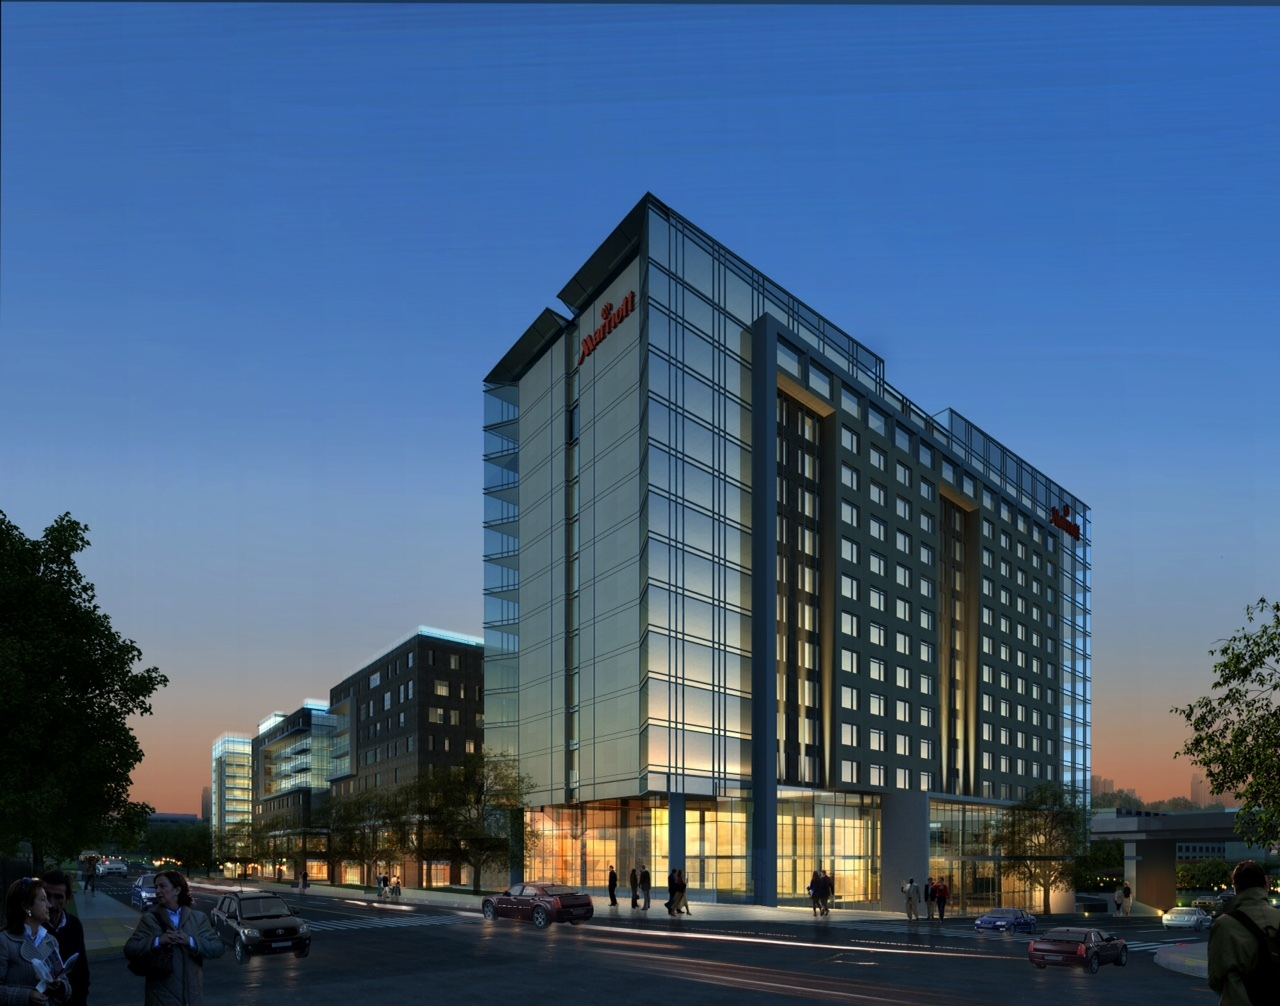 Construction Underway And On Schedule For The New Marriott Capitol District Hotel In Omaha Neb Business Wire